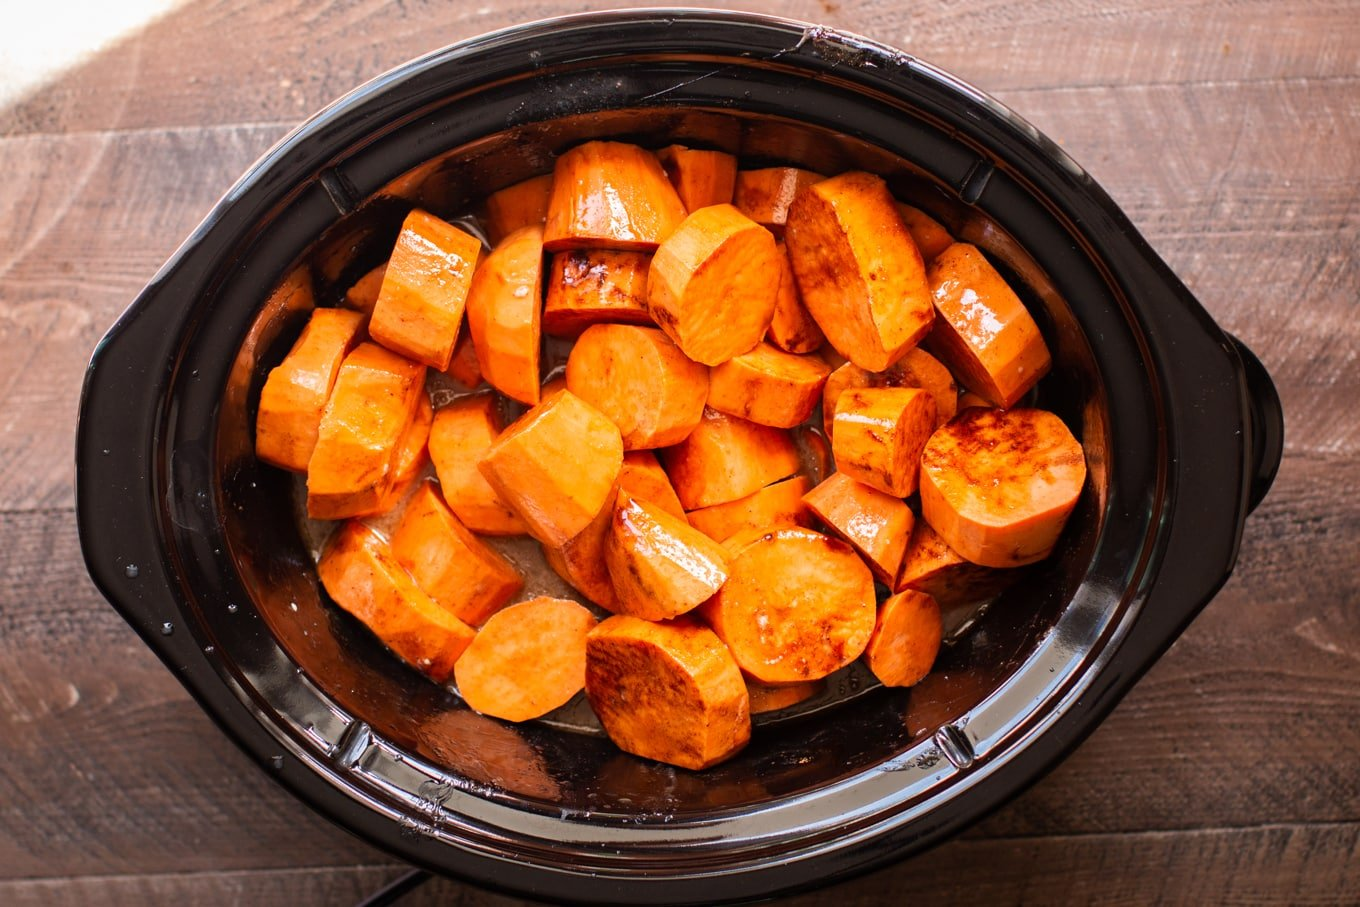 raw yams ready to cook in the slow cooker.